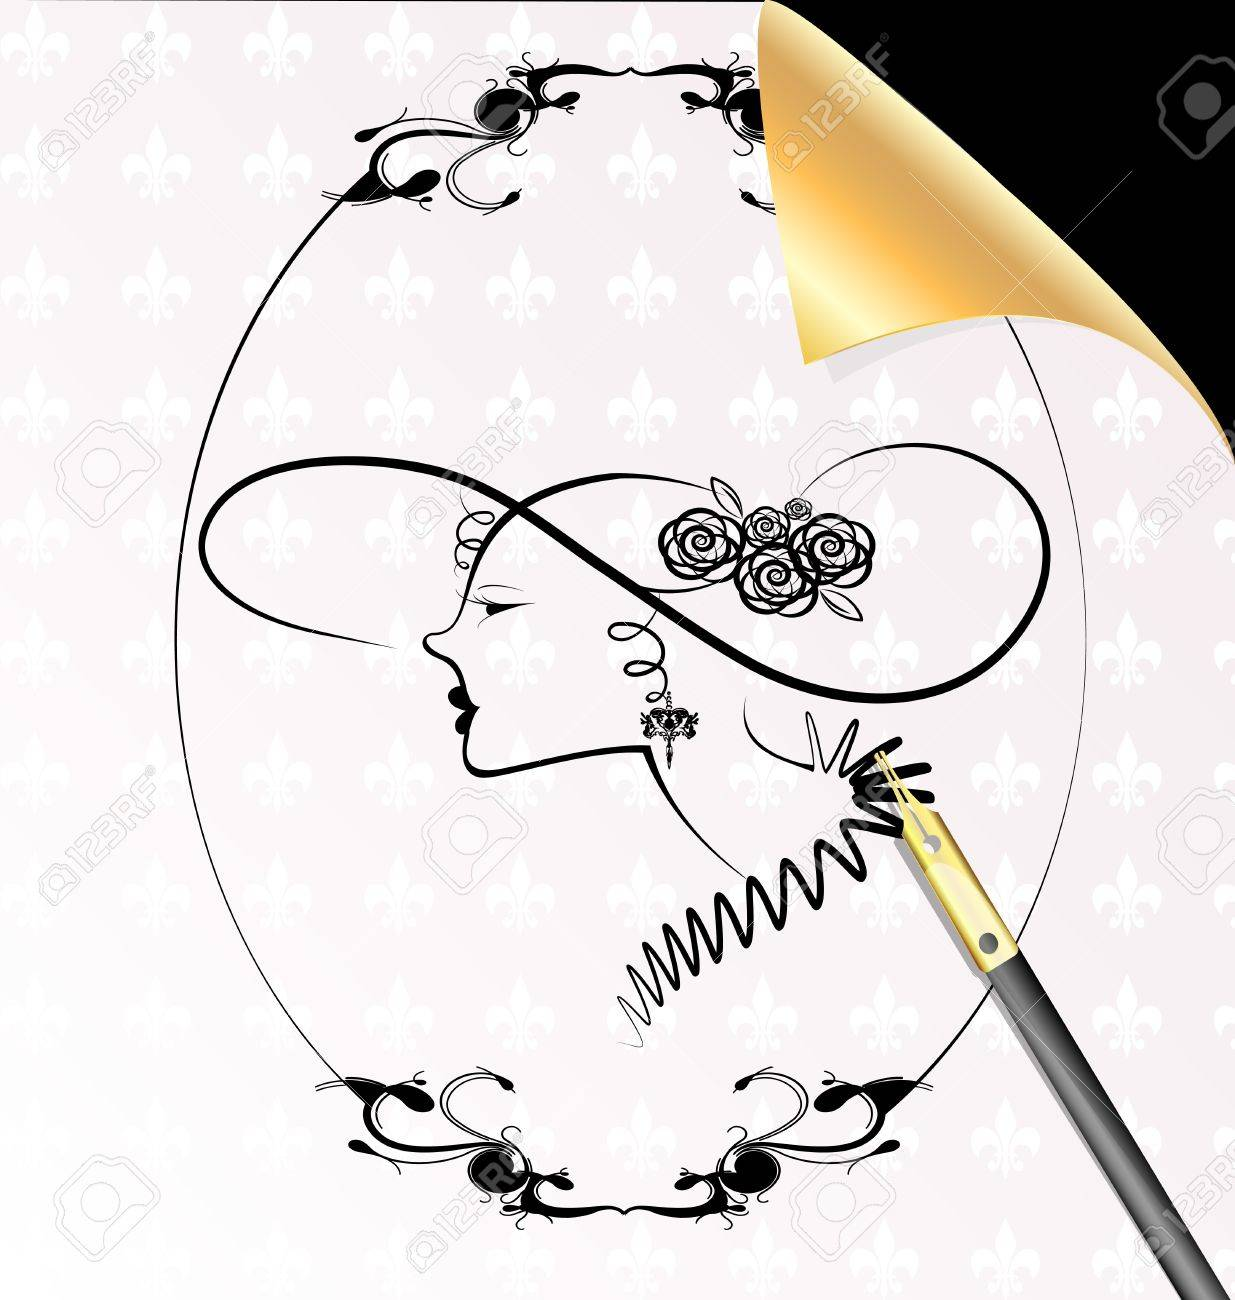 pen, sheet of paper and the image of a dame in the oval frame Stock Vector - 12492222